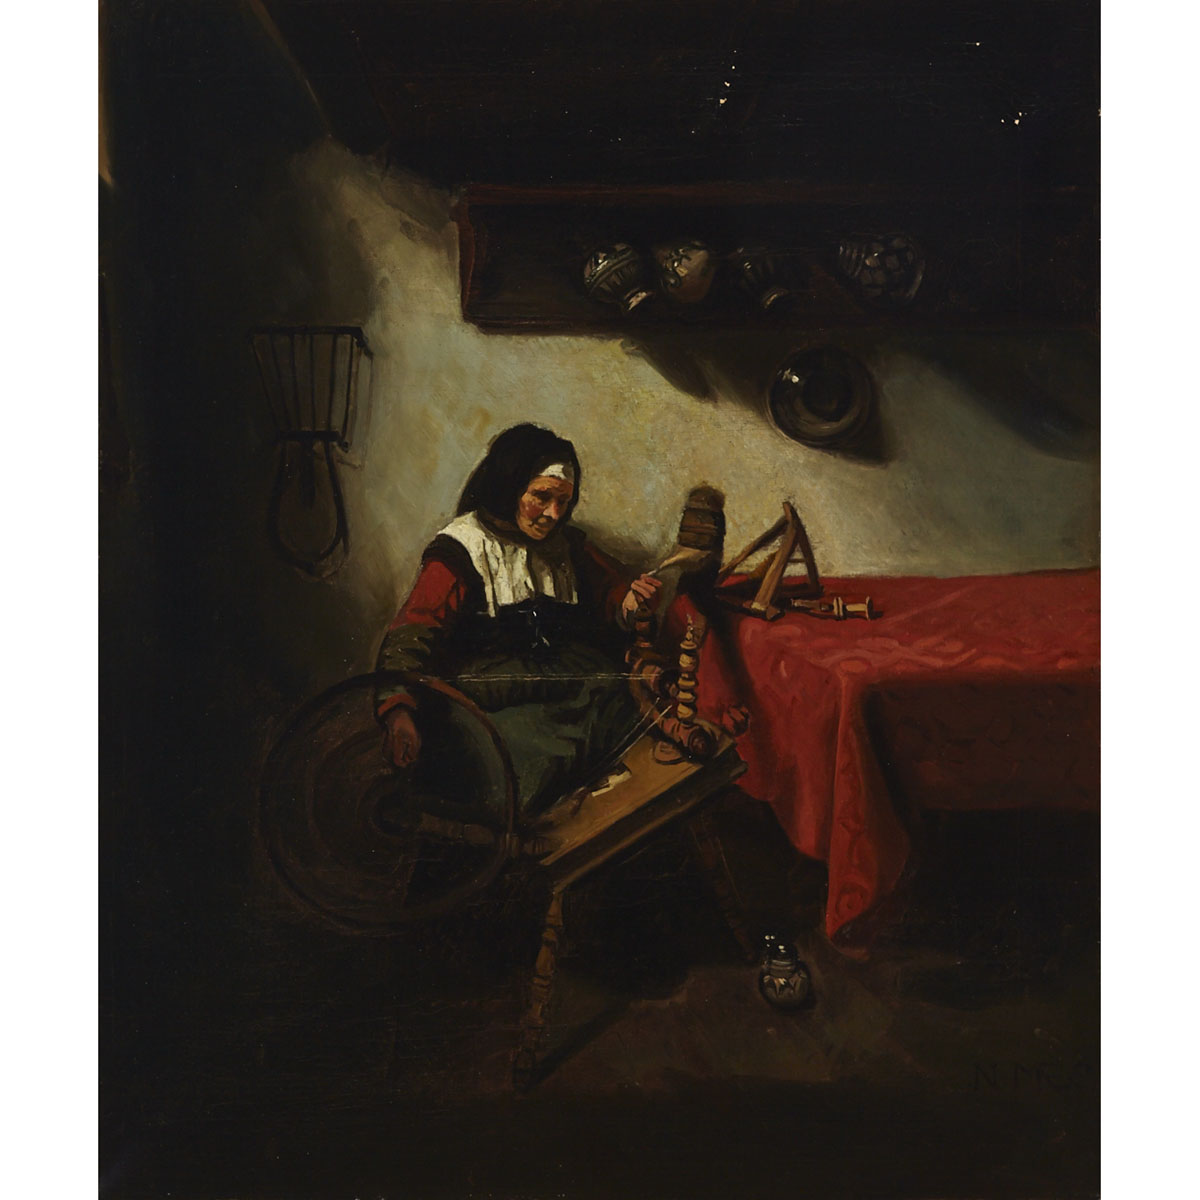 After Nicolaes Maes (1634-1693)